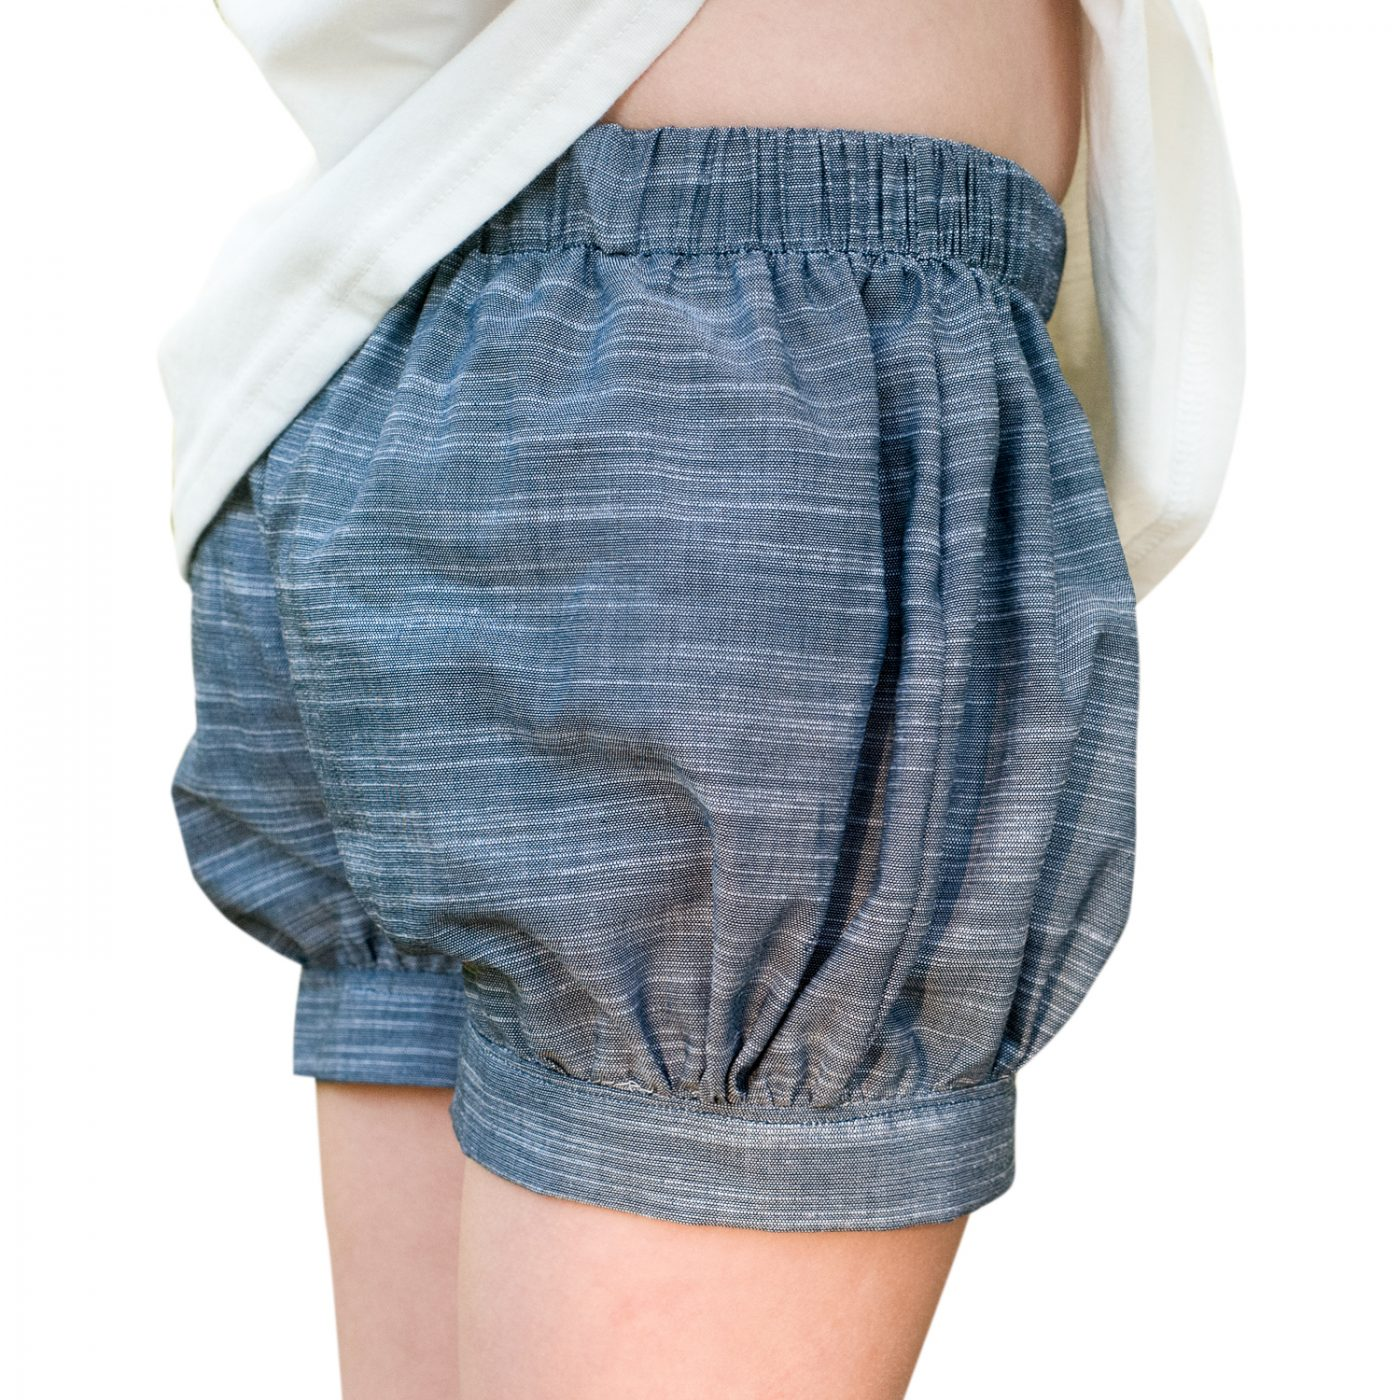 The Bubble Shorts Sewing Pattern